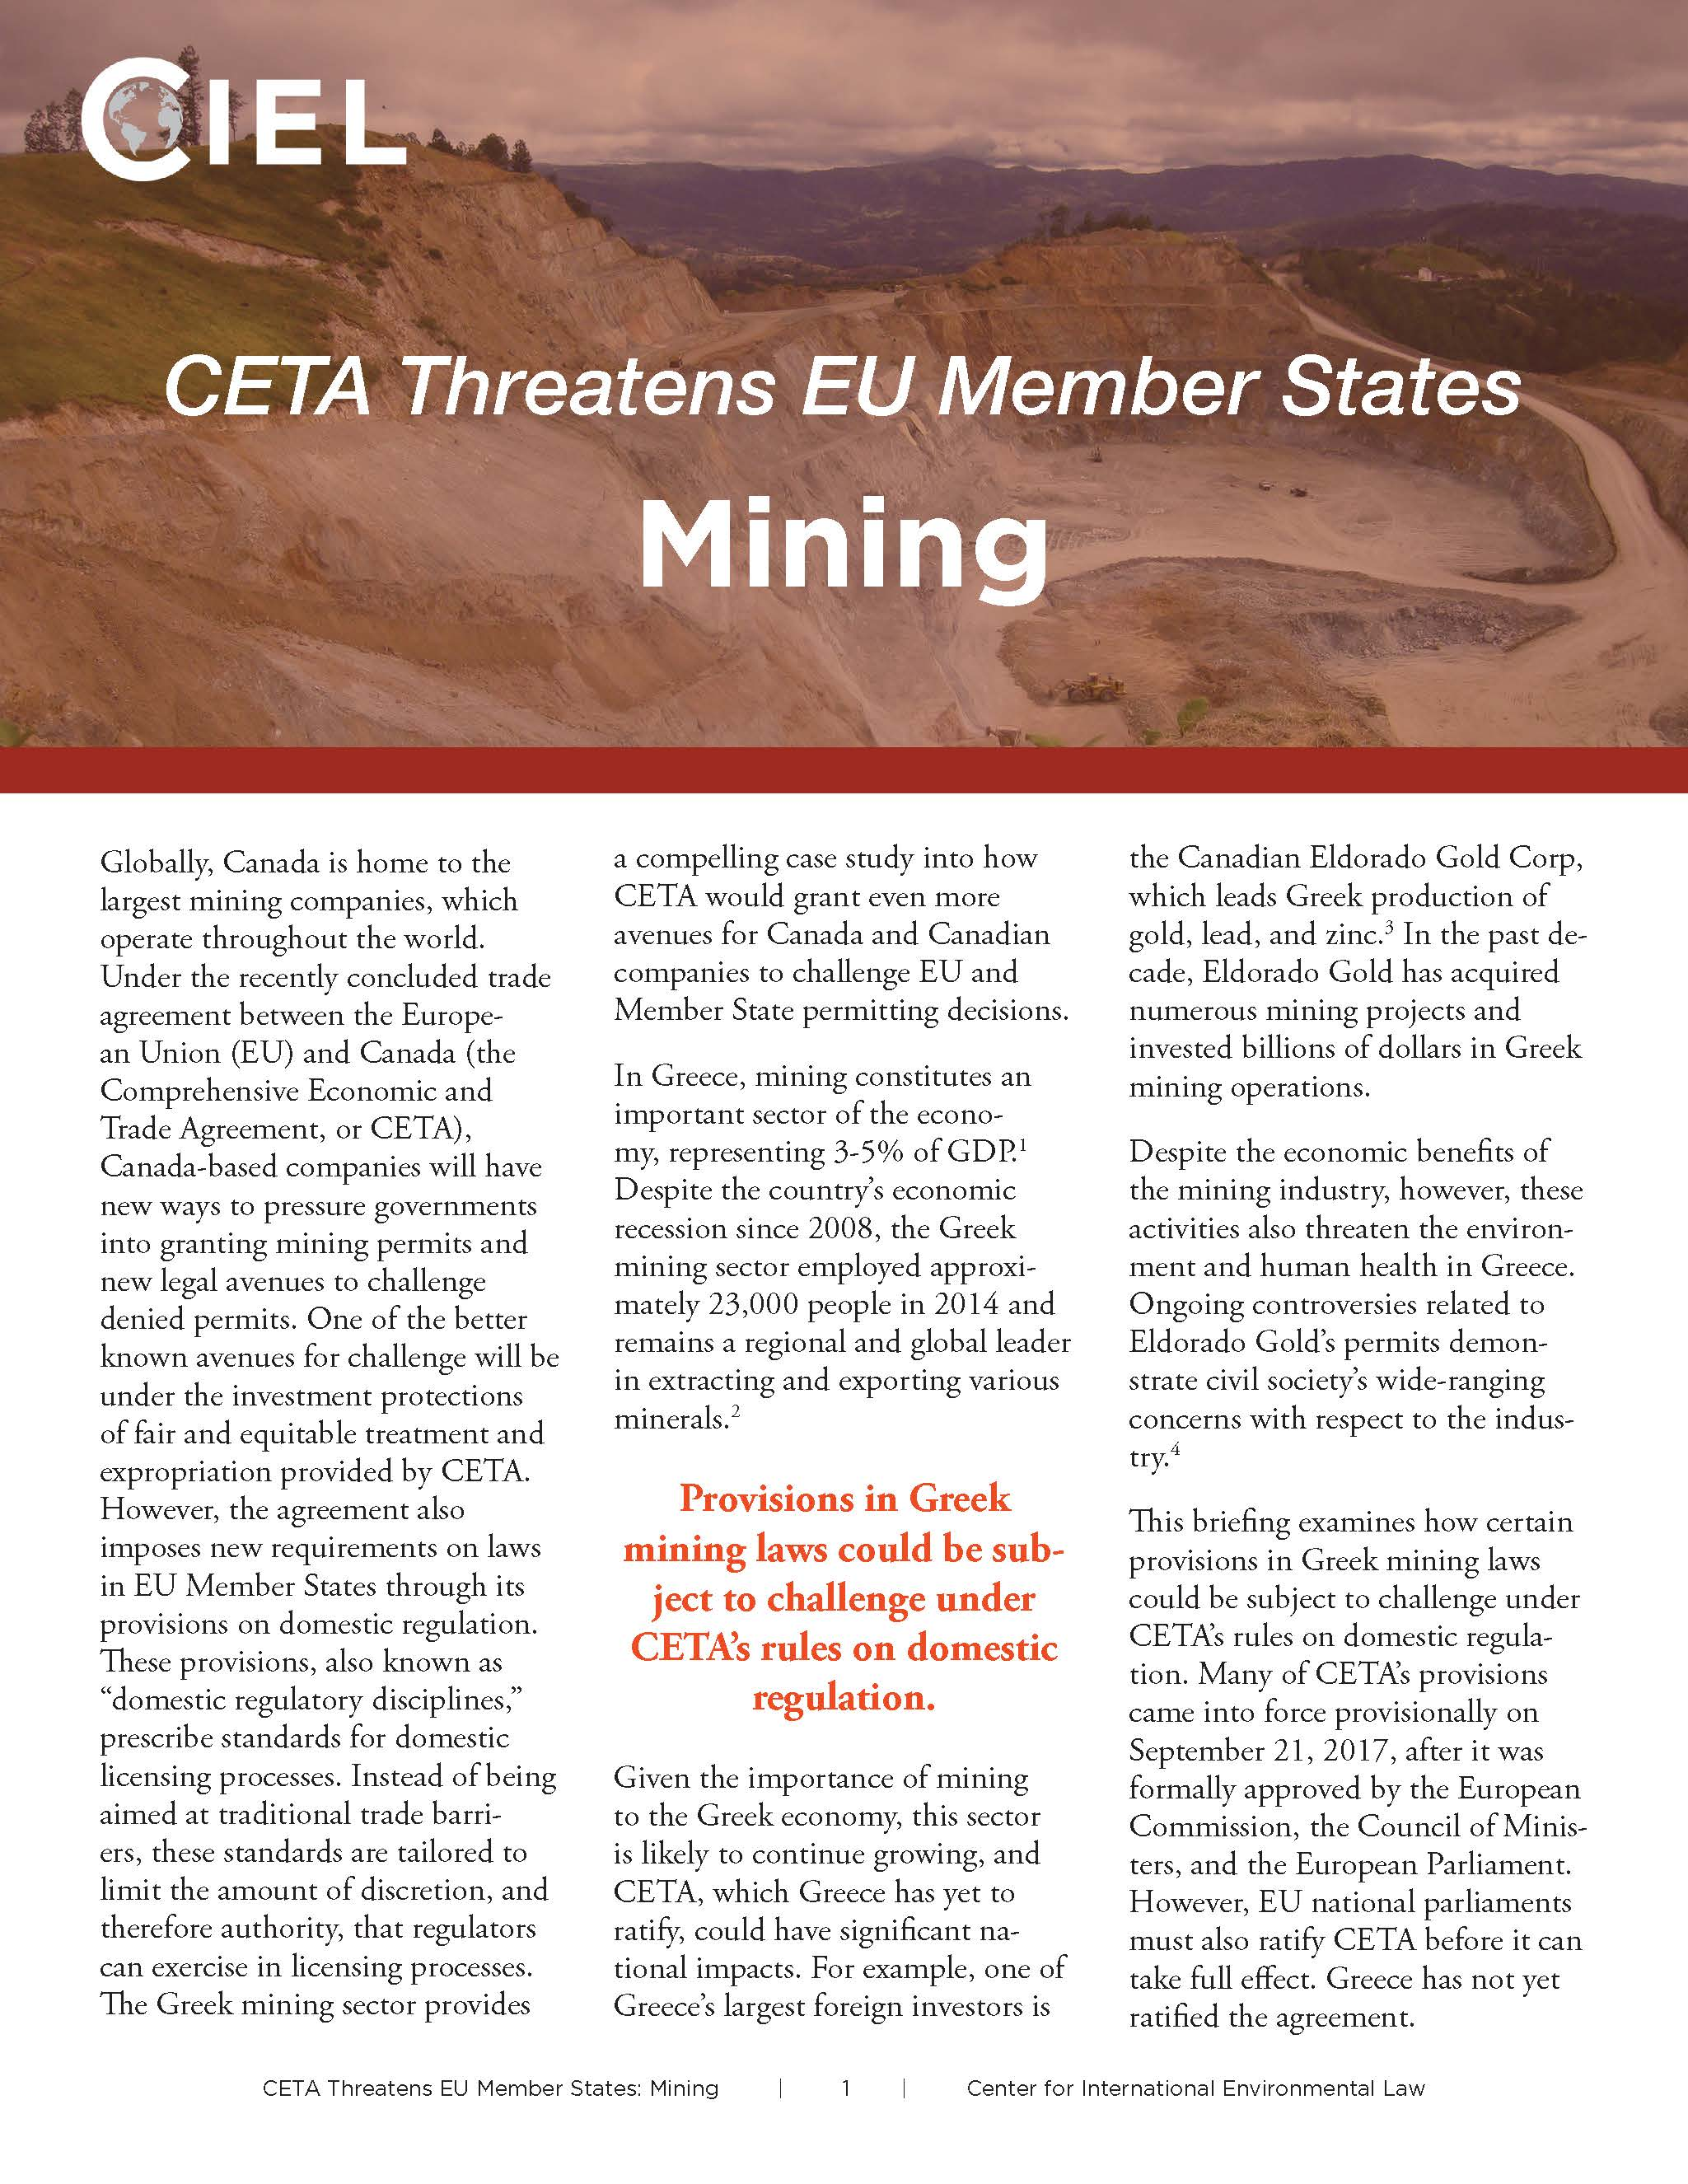 CETA mining v3 1 | Center for International Environmental Law